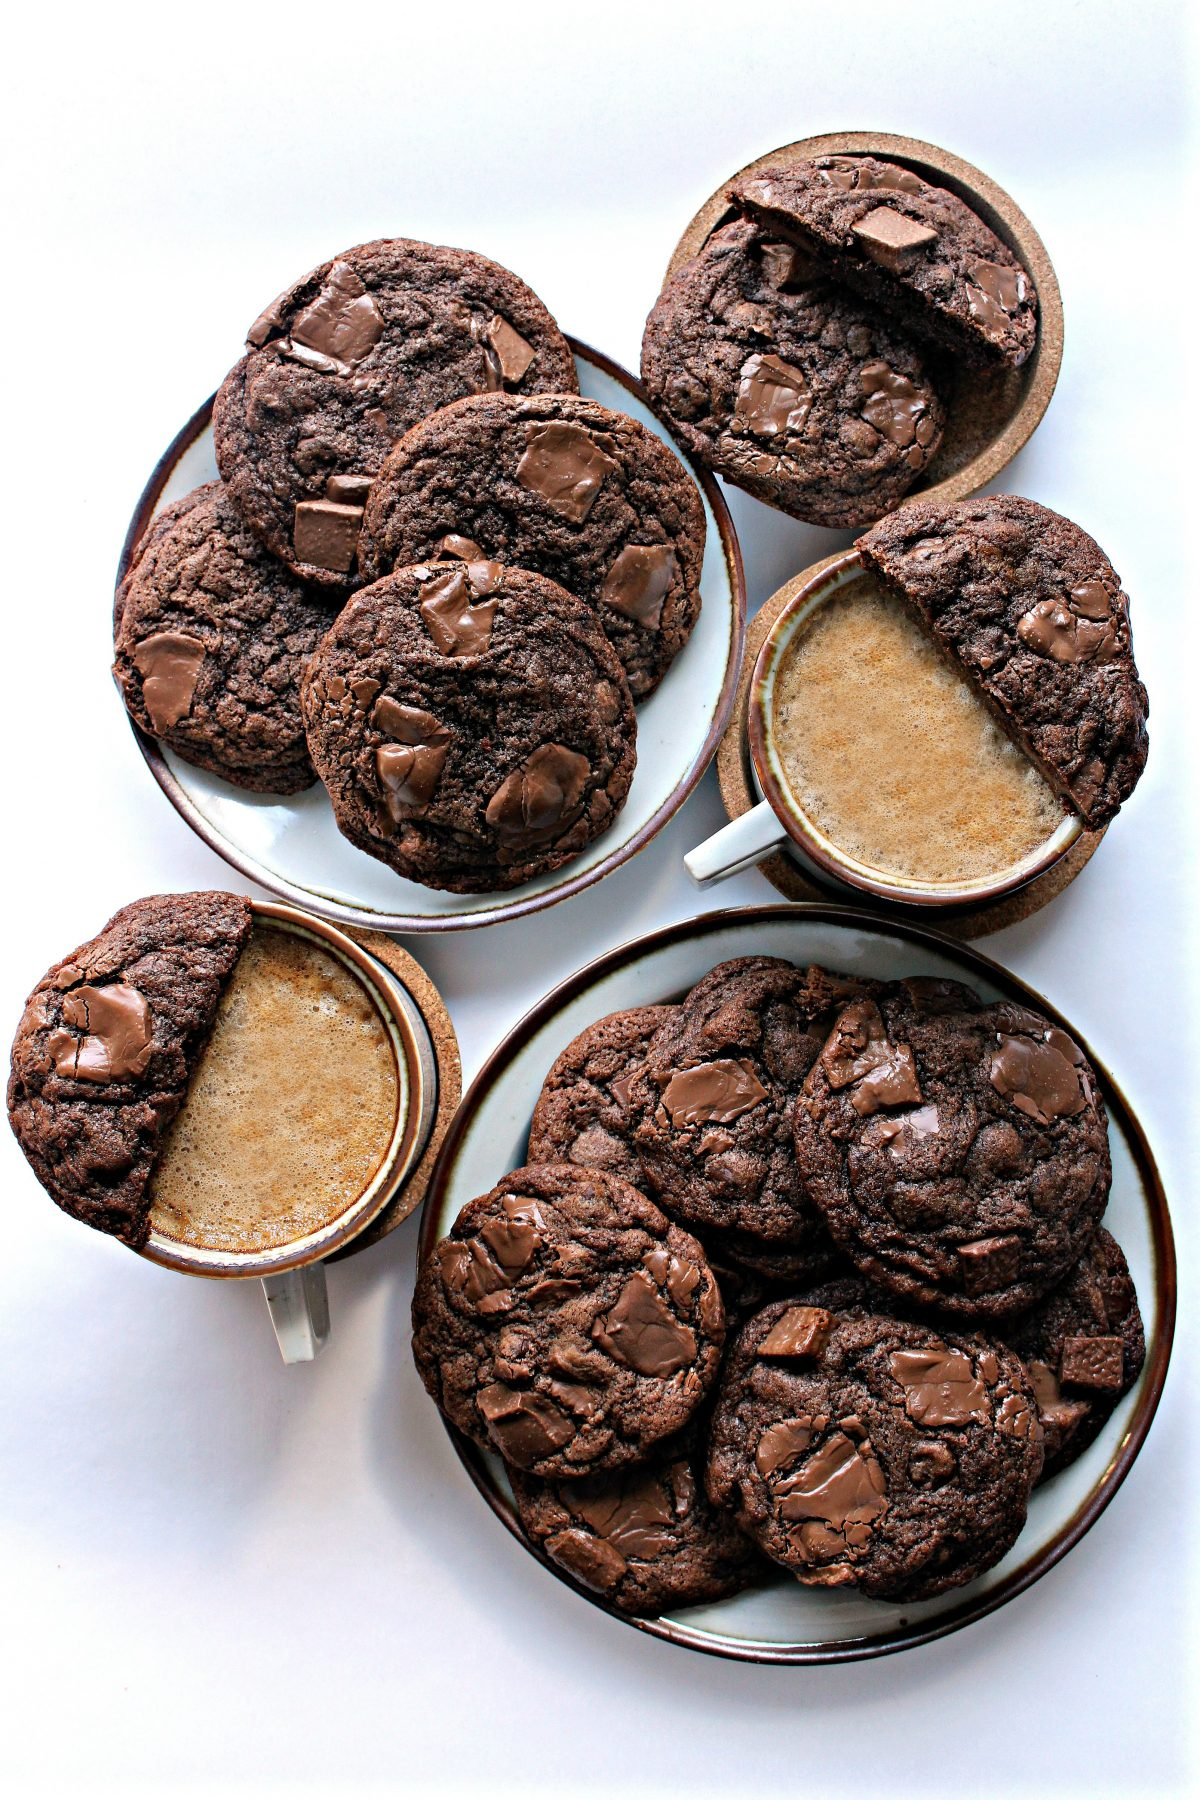 Chocolate Chip Mocha Cookies on plates with two cups of coffee.